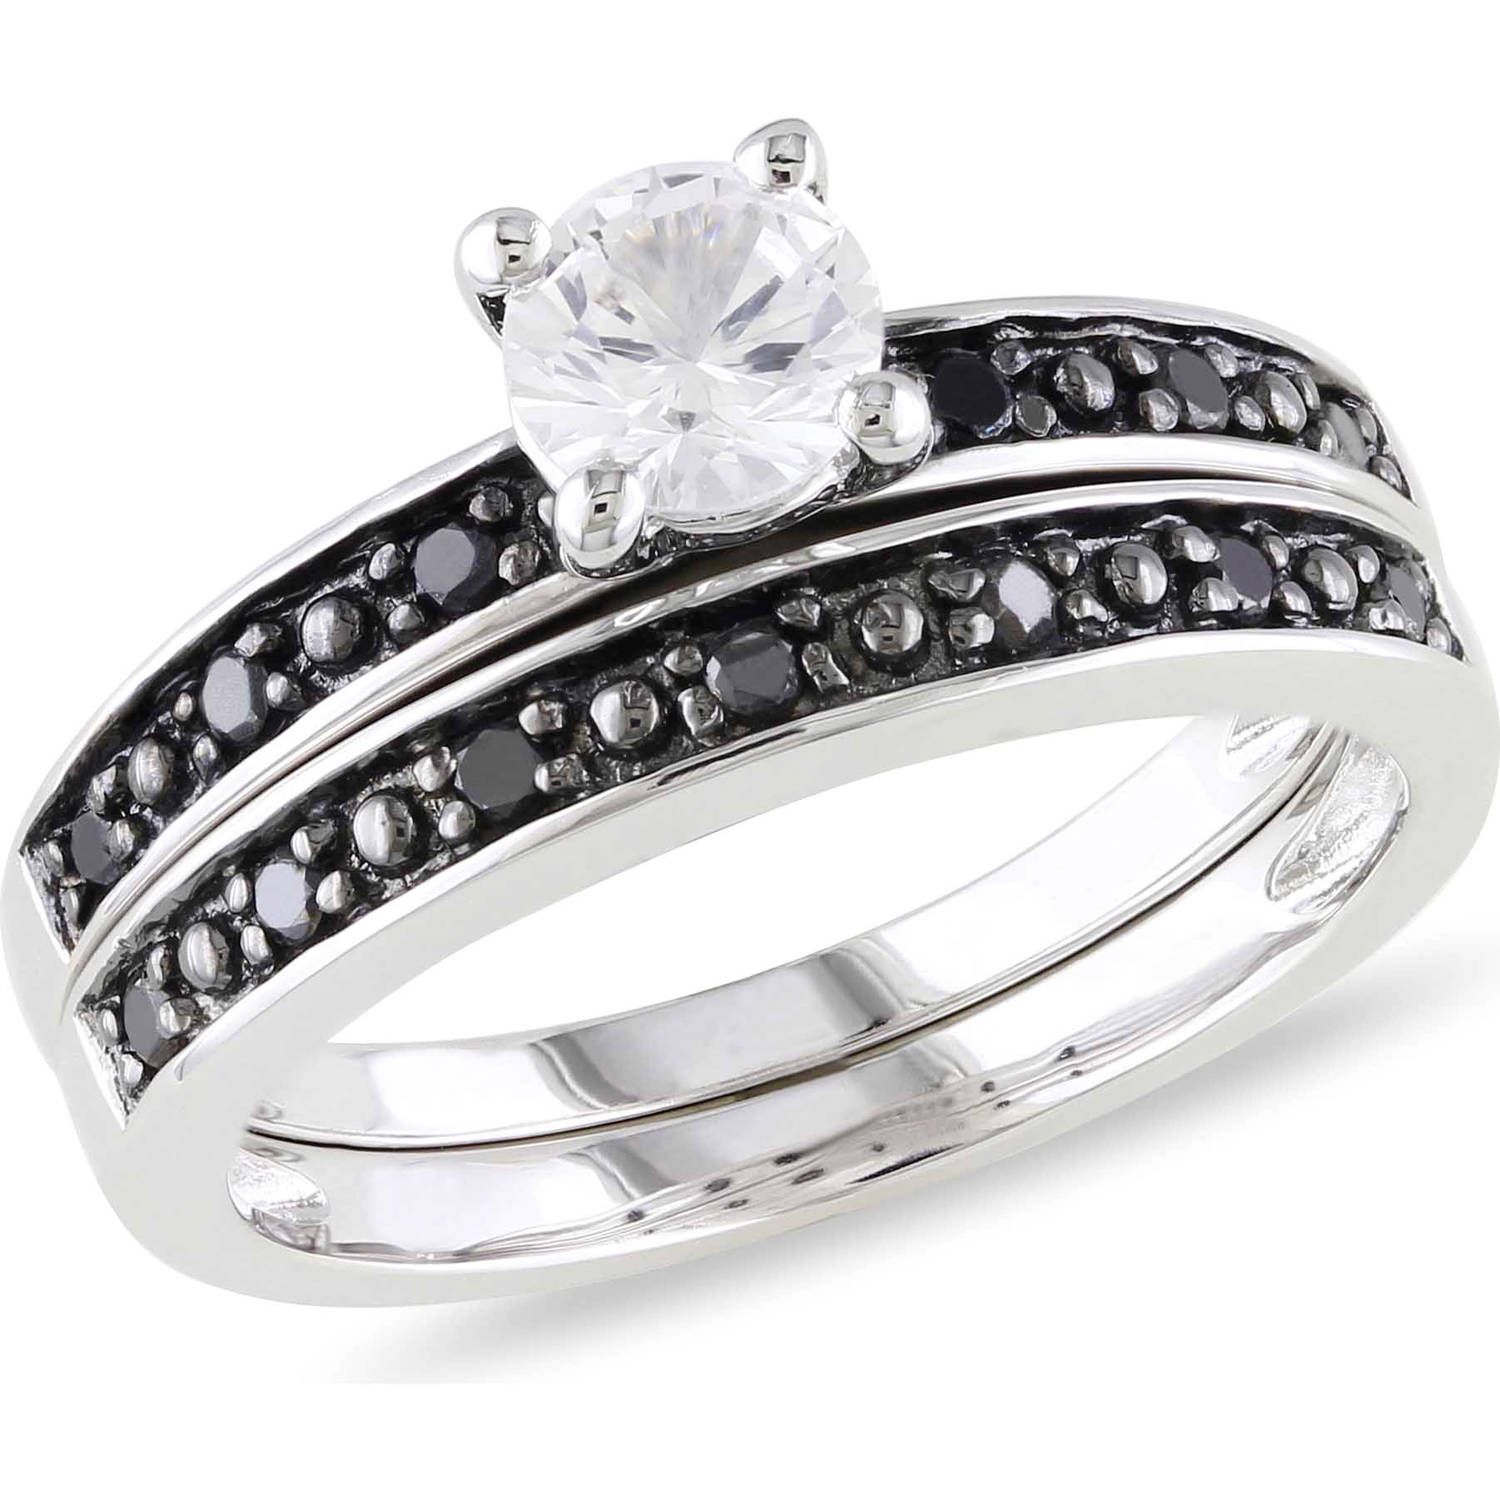 5/8 Carat T.G.W. Created White Sapphire and 1/5 Carat T.W. Black Diamond Sterling Silver Bridal Set